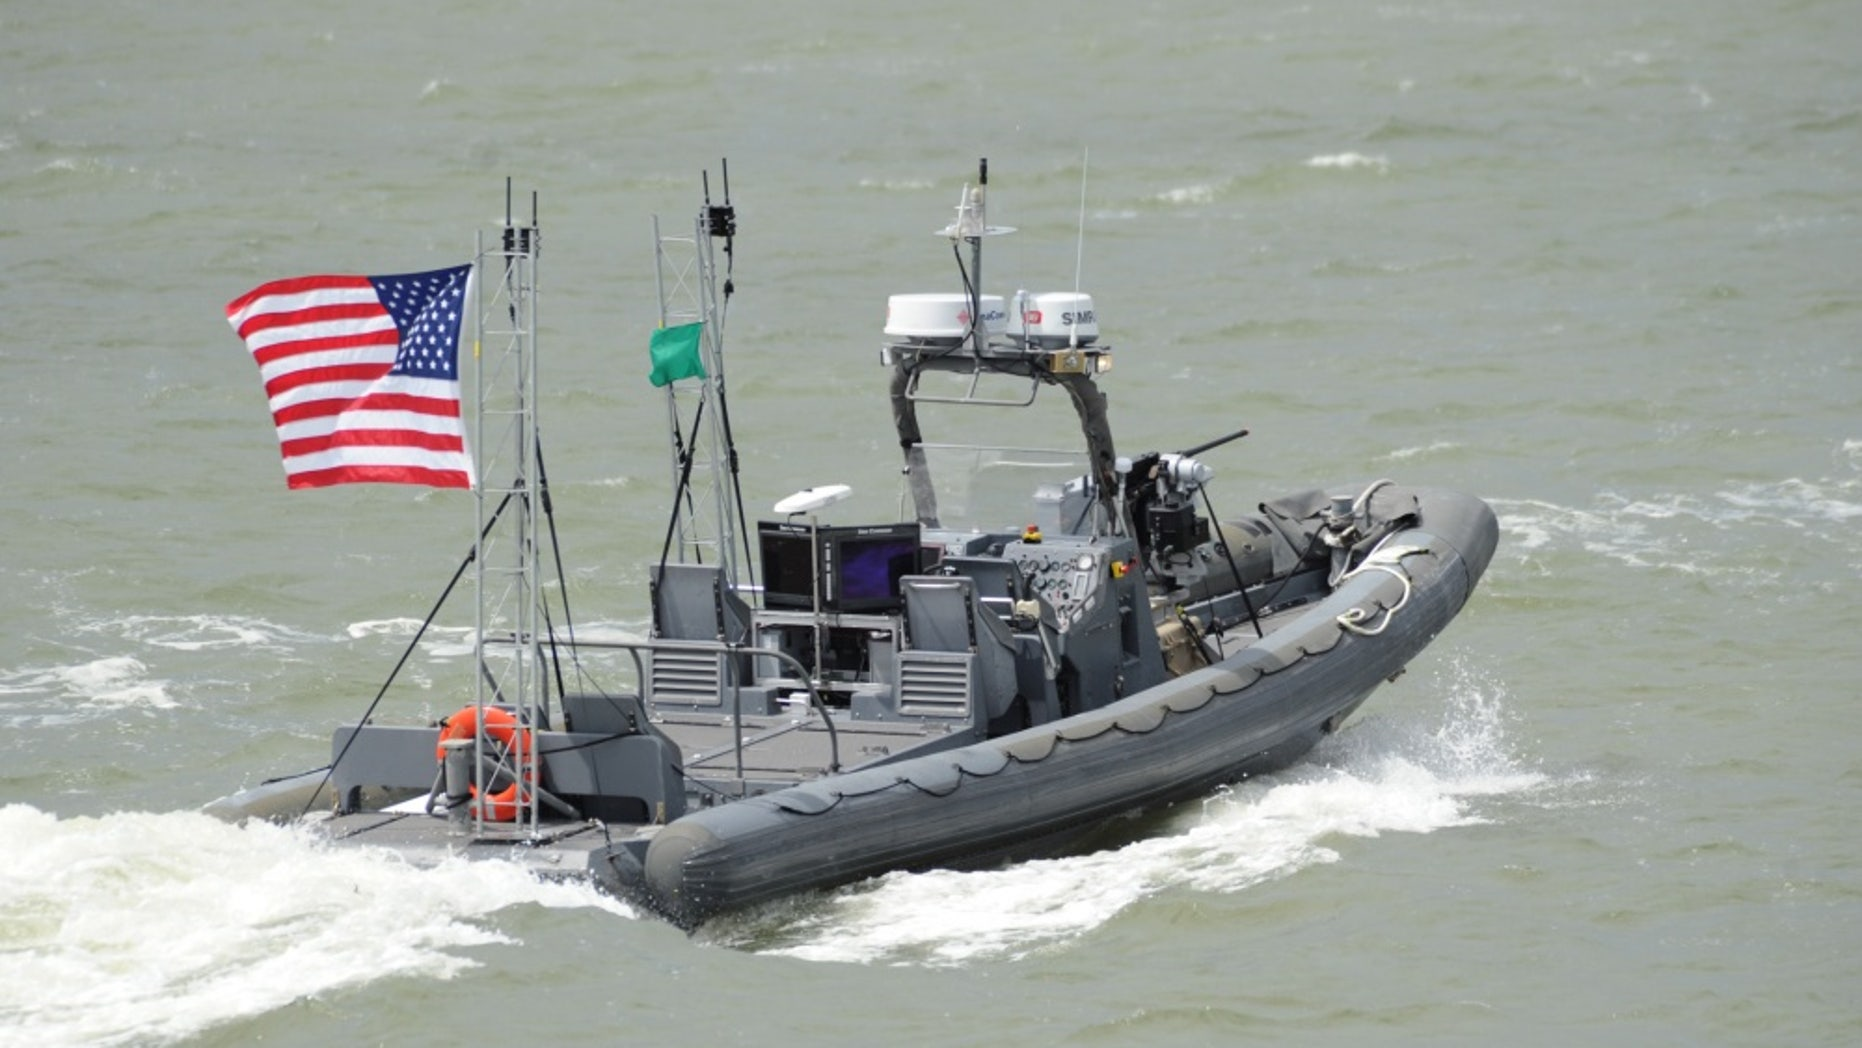 File photo - An unmanned 11-meter rigid-hull inflatable boat from Naval Surface Warfare Center Carderock operates autonomously during an Office of Naval Research-sponsored demonstration of swarmboat technology on the James River in Newport News, Va.(U.S. Navy photo by John F. Williams/Released)